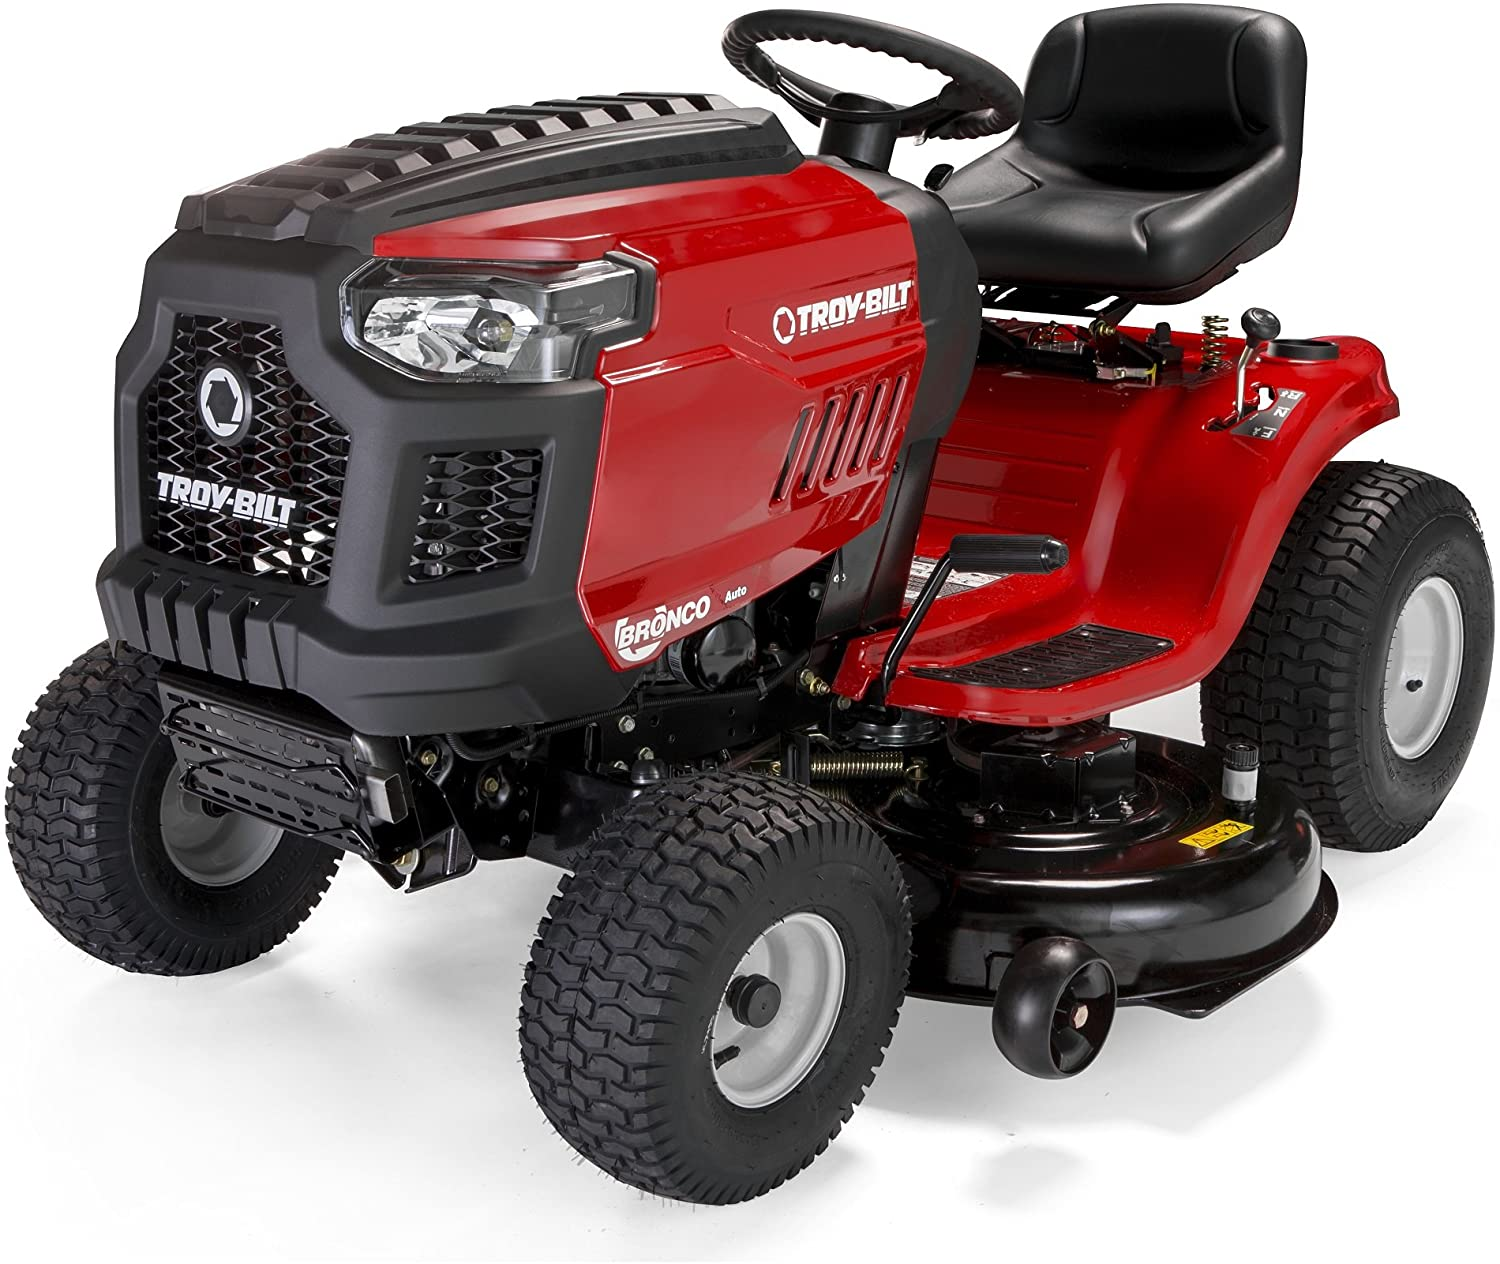 Troy Bilt vs Craftsman: Which one is best and why?